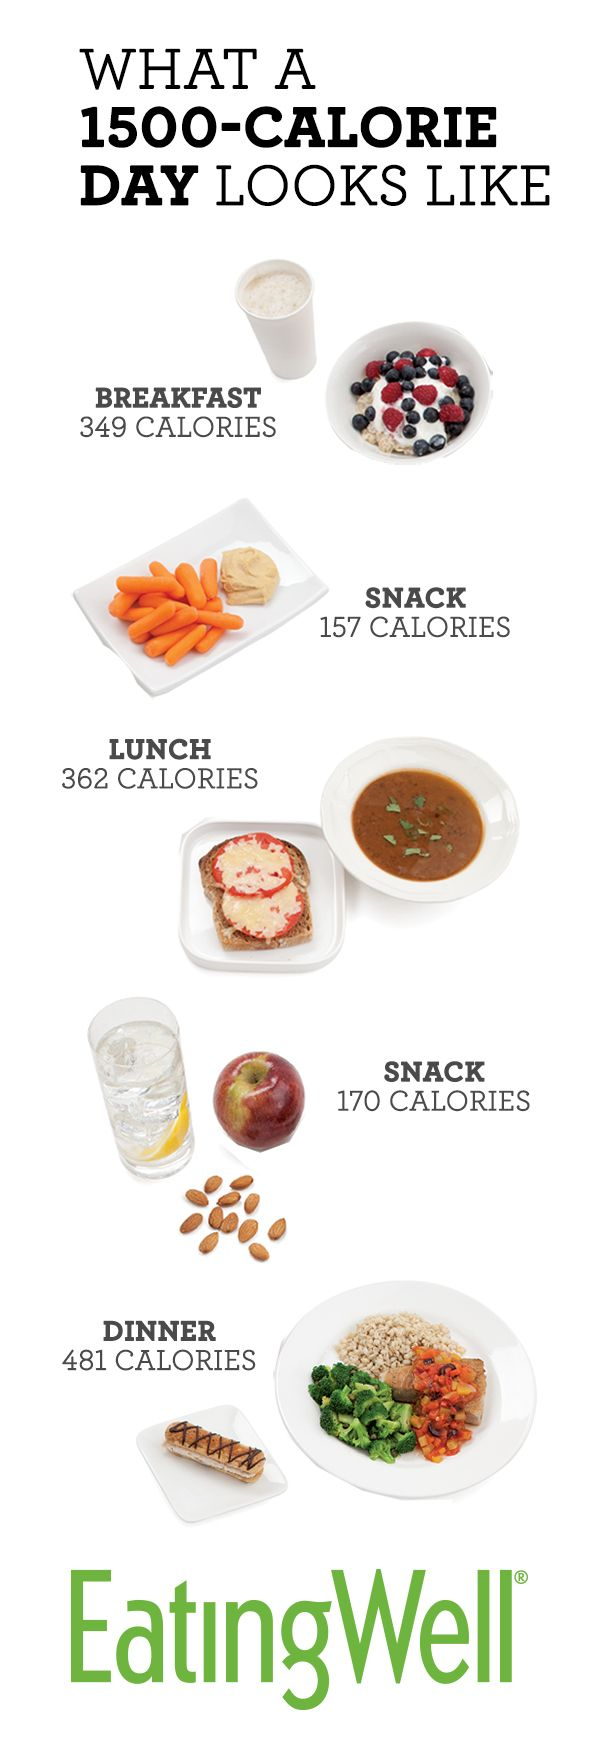 daily meal plan for a 1500 calories diet